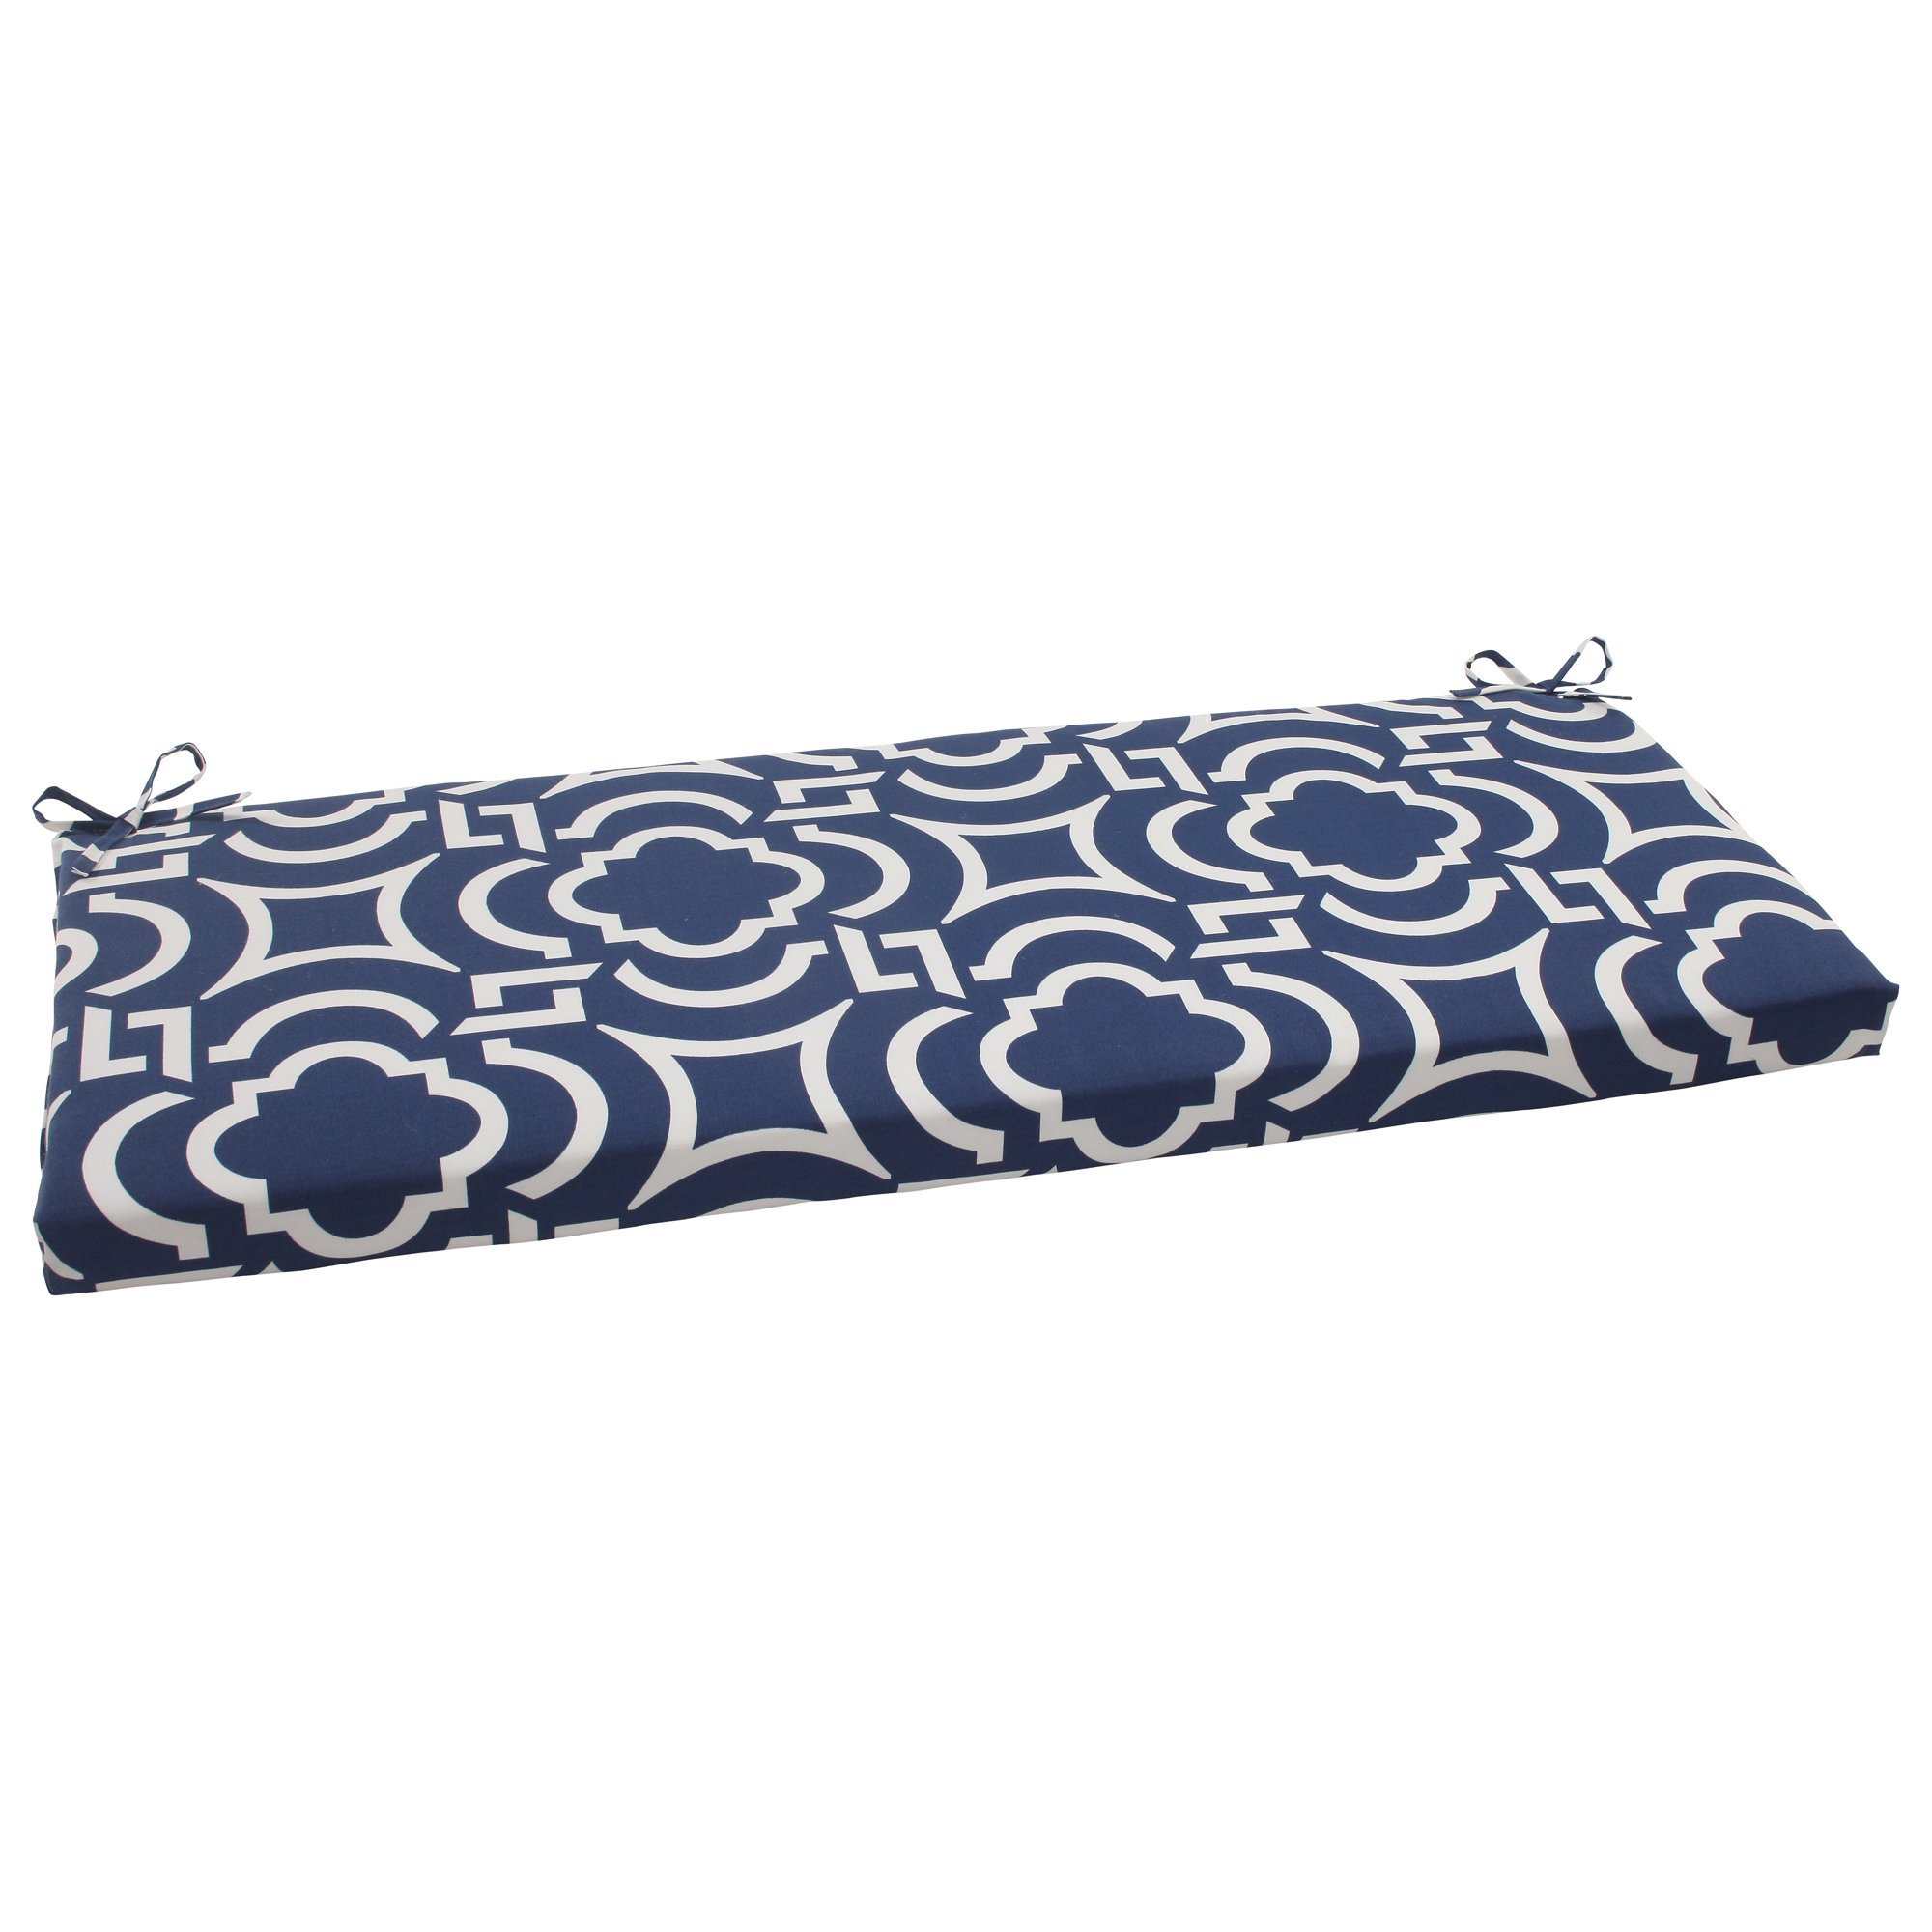 Pillow Perfect Indoor/Outdoor Carmody Bench Cushion, Navy